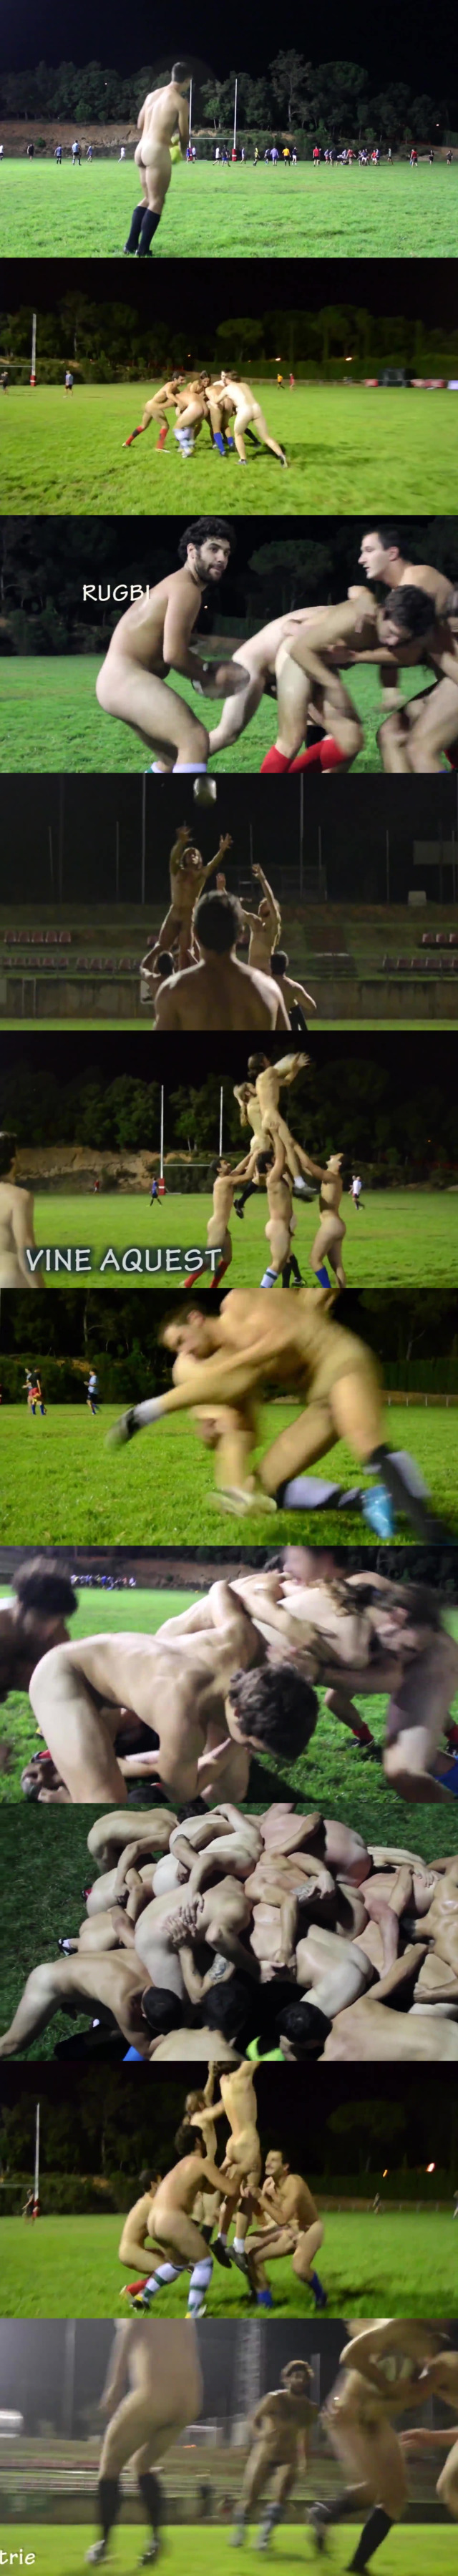 naked rugby match